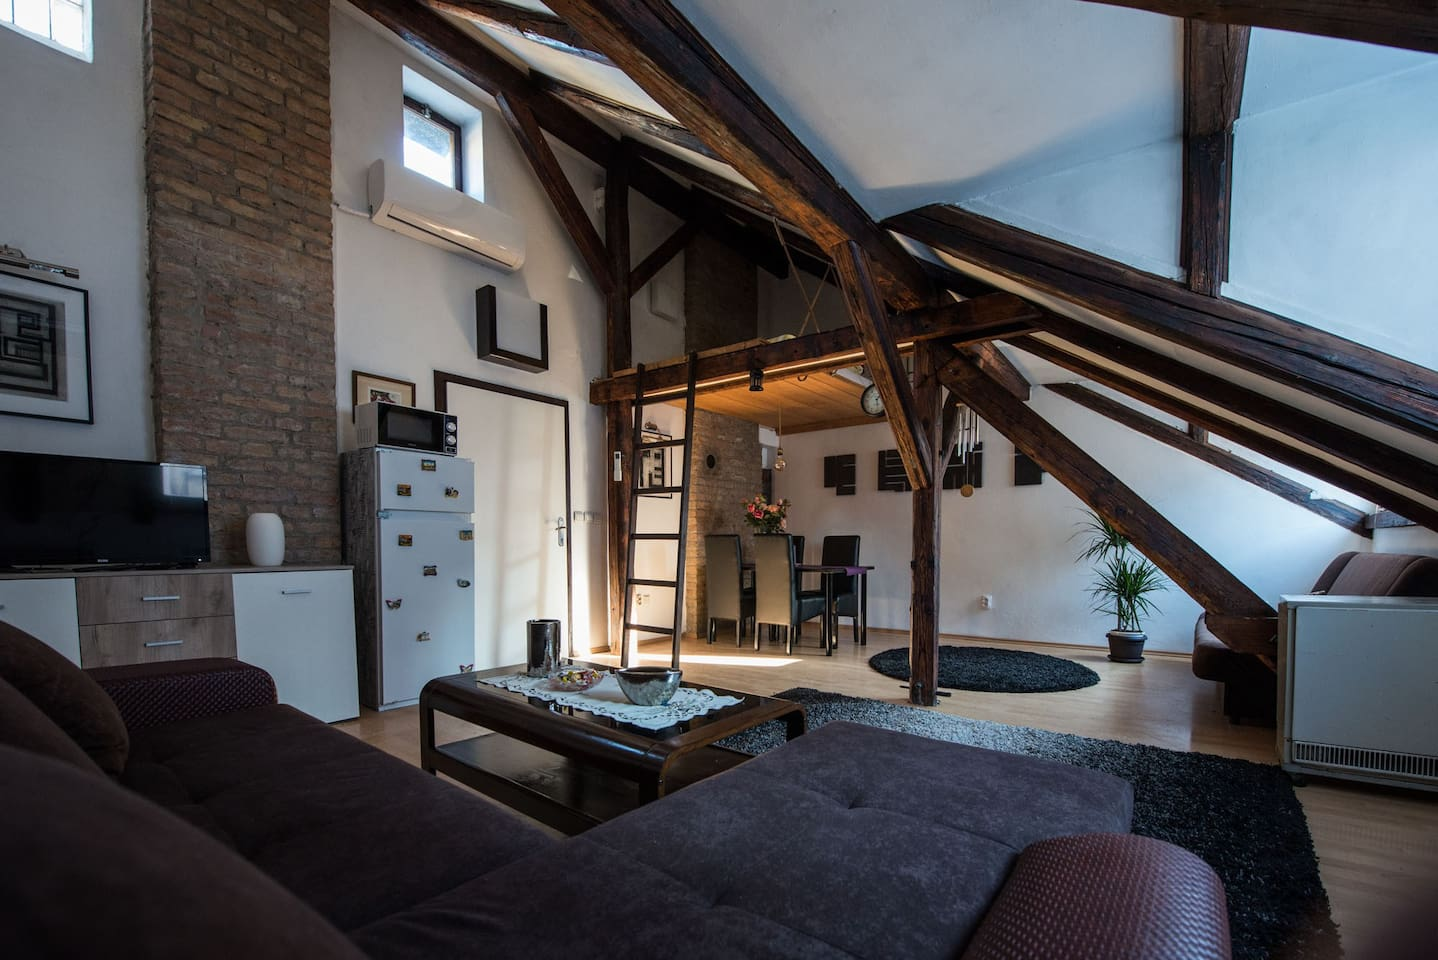 downtown studio apartments for rent in beograd serbia